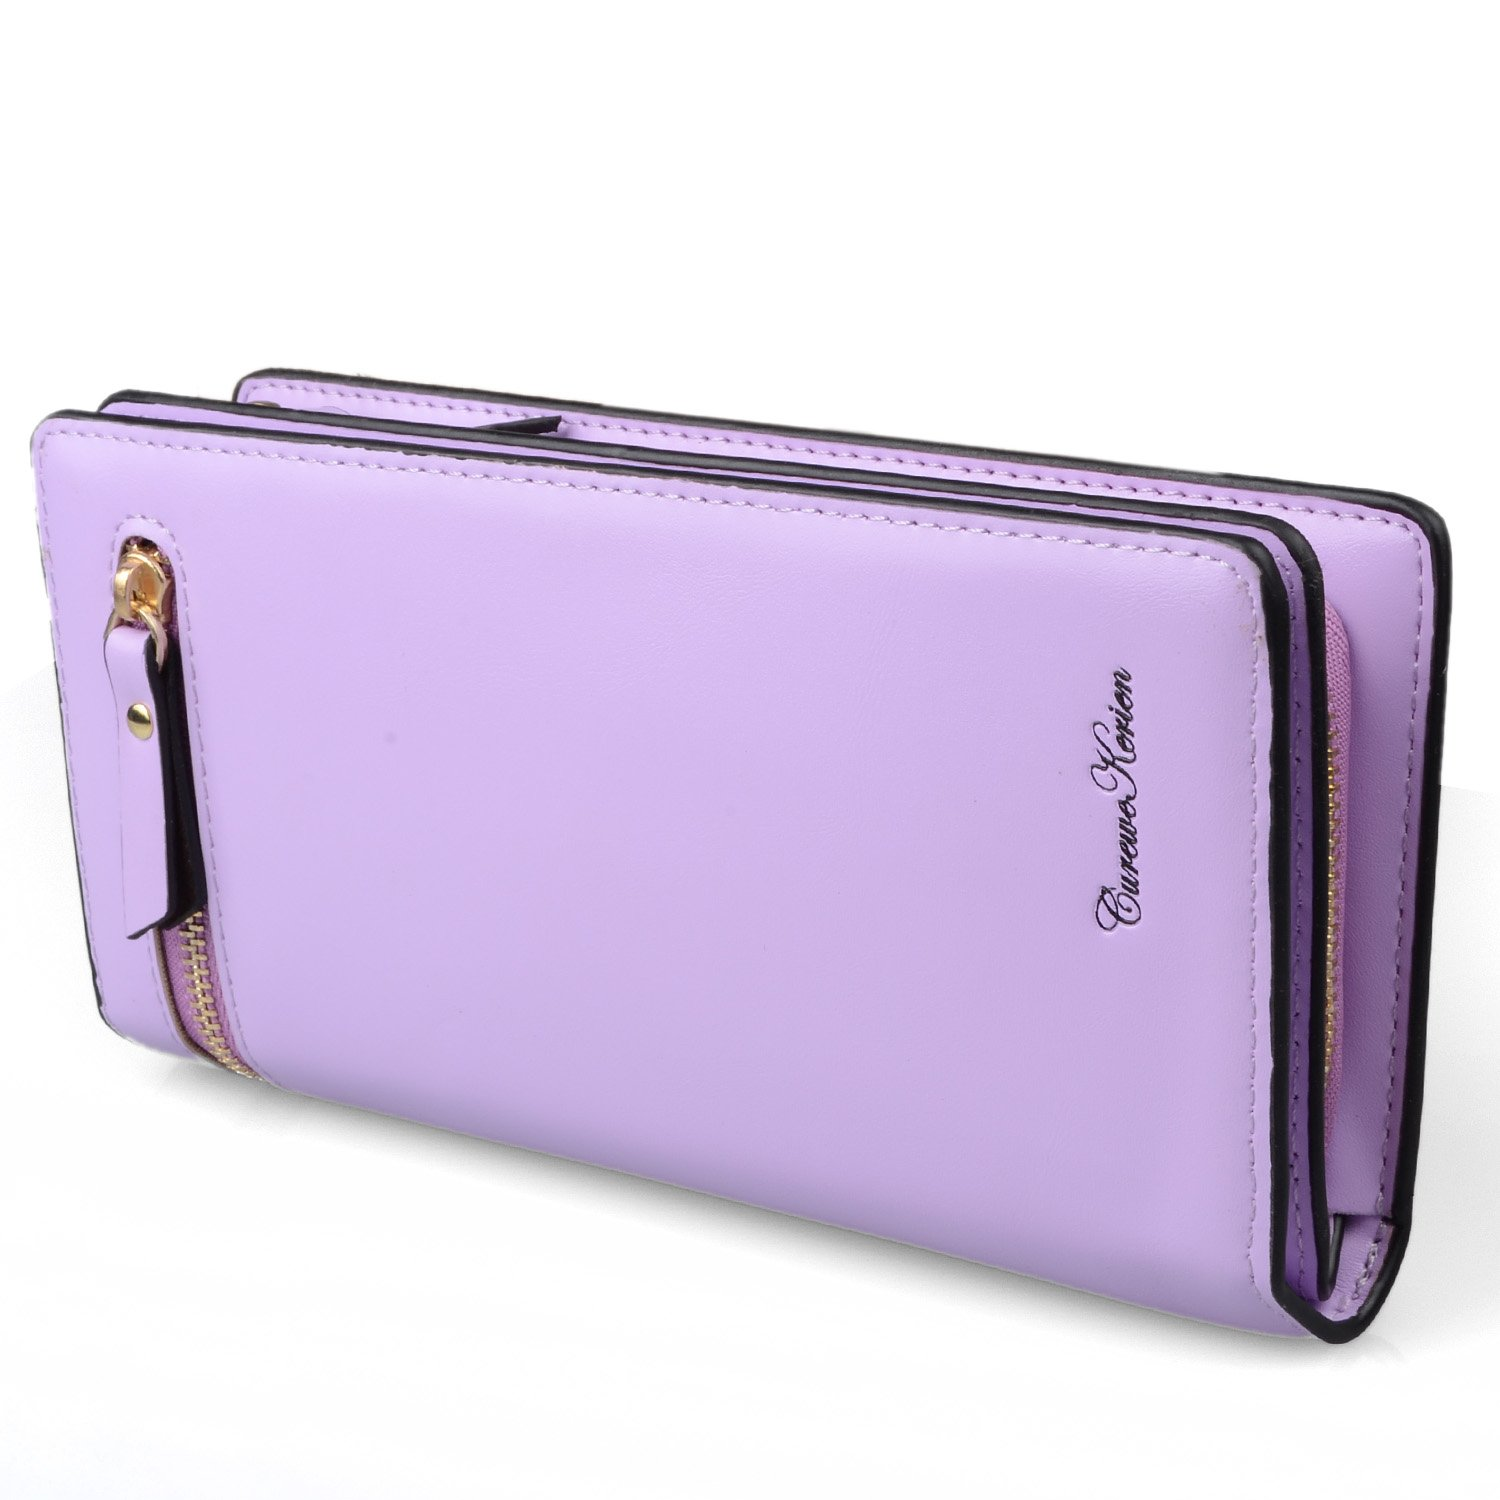 Gottowin Women Long Clutch Wallet PU Leather Handbag Ladies Purse Large Capacity Multi Card Cellphone Holder Organizer with Zipper Closure Valentine's Gift (Lilac)